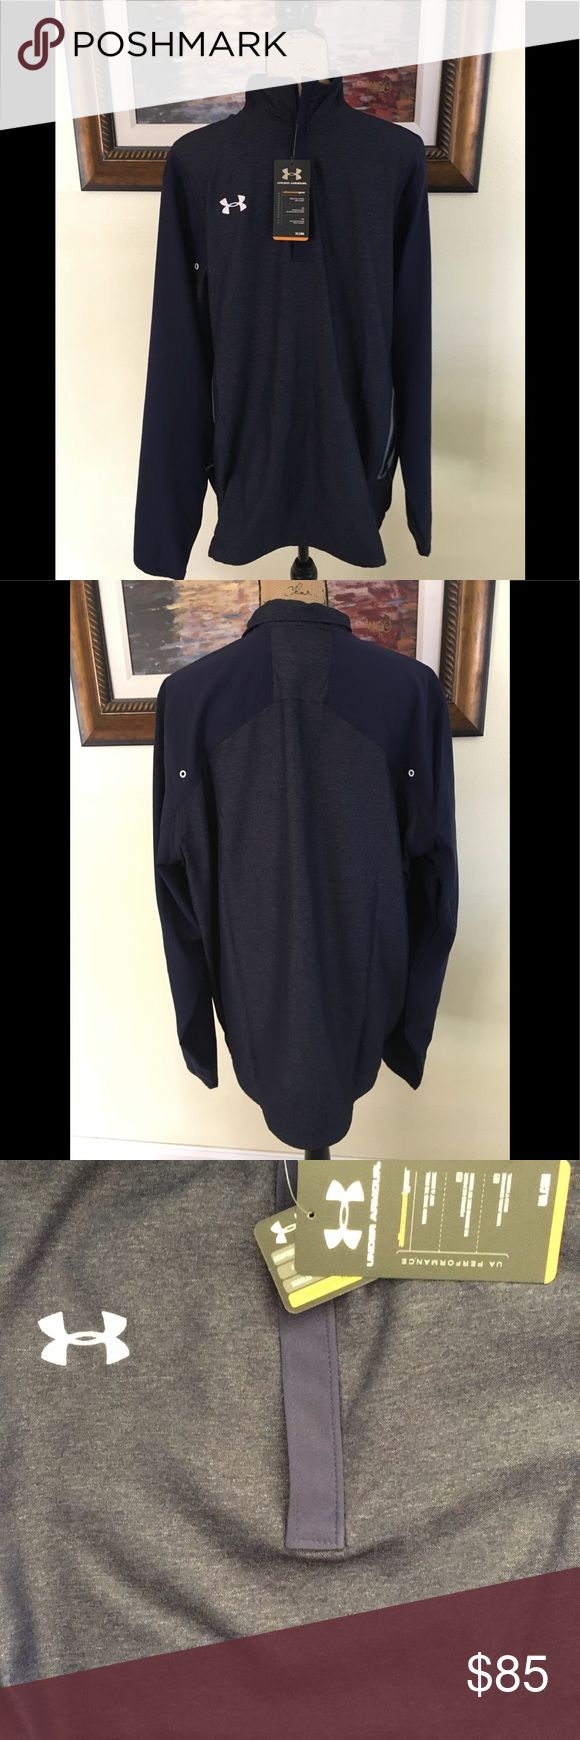 Under Armour Jacket Under Armour Jacket.  New with tag.  Half zip.  Navy color.  Pullover style.  Classic to wear all year season.  Loose fit.  Wear to feel Dry and light. Under Armour Jackets & Coats Performance Jackets